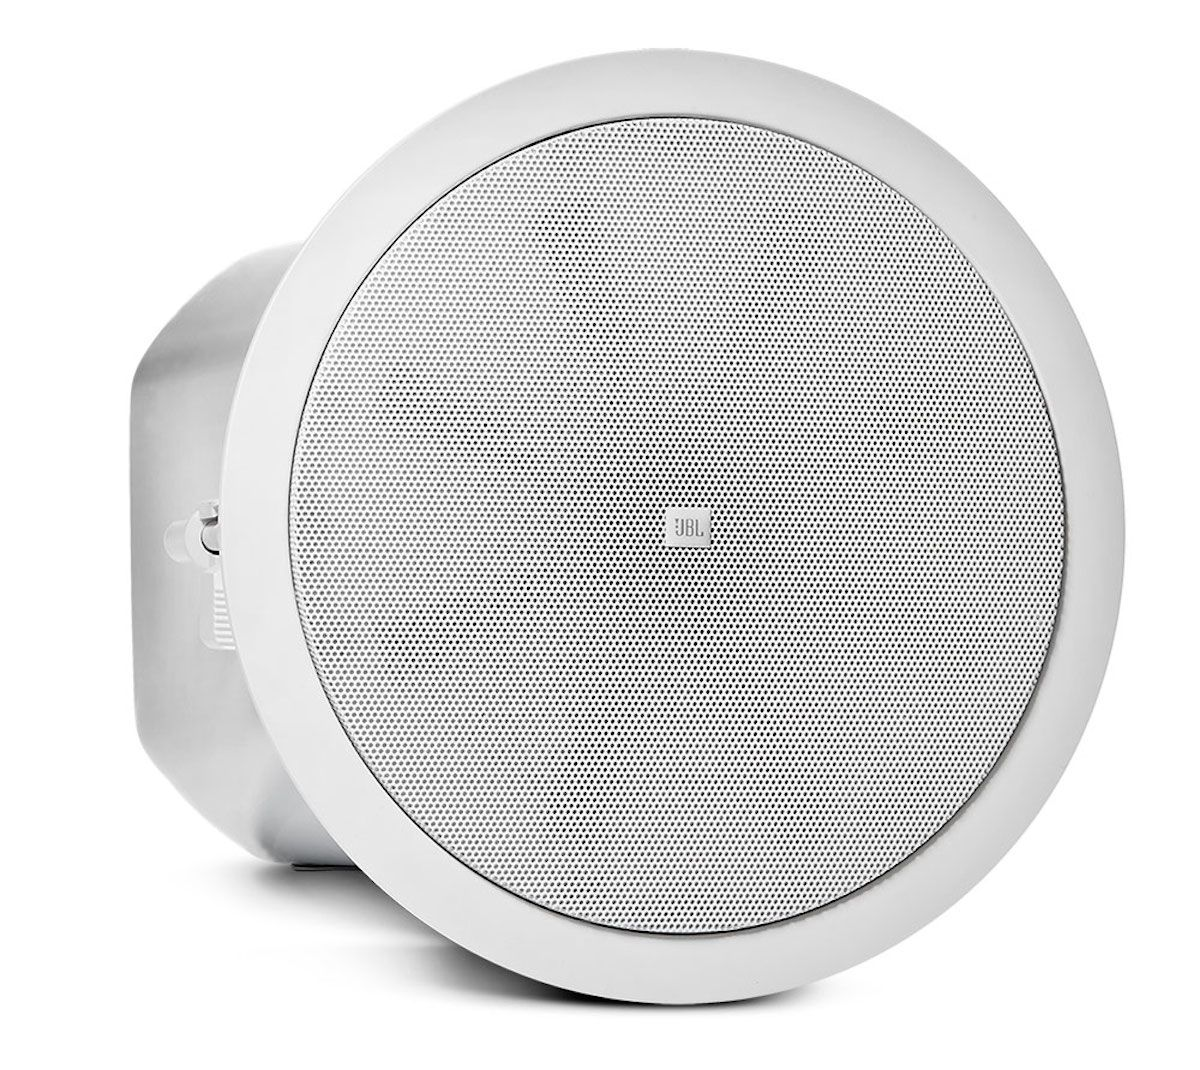 Jbl Control 26ct 6 5 Inch Two Way Vented Ceiling Speaker With Transformer Http Bit Ly 2k1q4tc For More In C Jbl In Wall Speakers Wireless Speakers Bluetooth